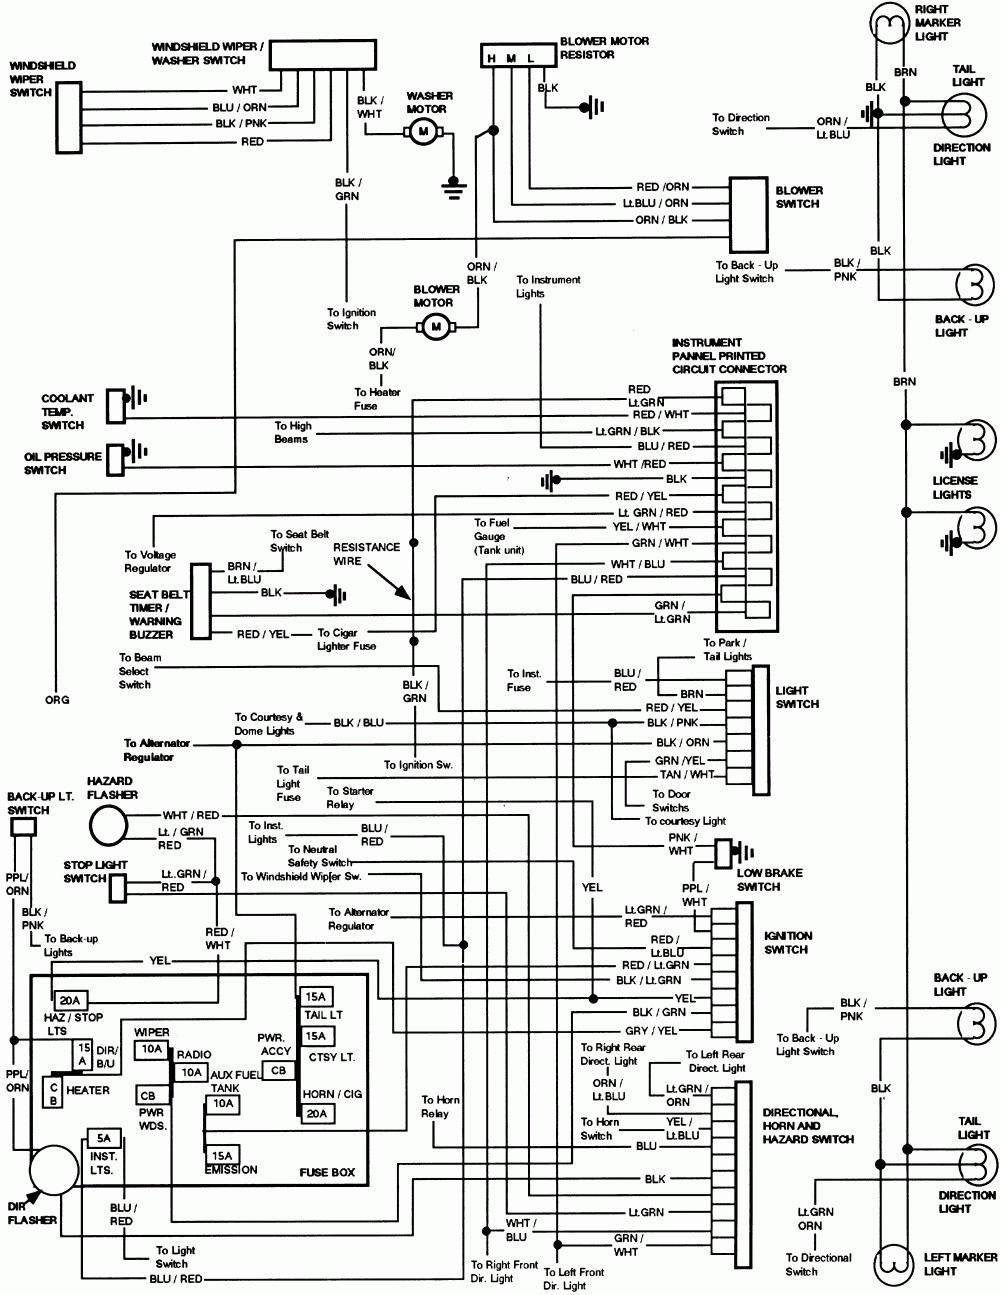 hight resolution of f150 electrical diagram wiring diagram fascinating 2000 ford f150 wiring diagram 2000 f150 wiring diagram